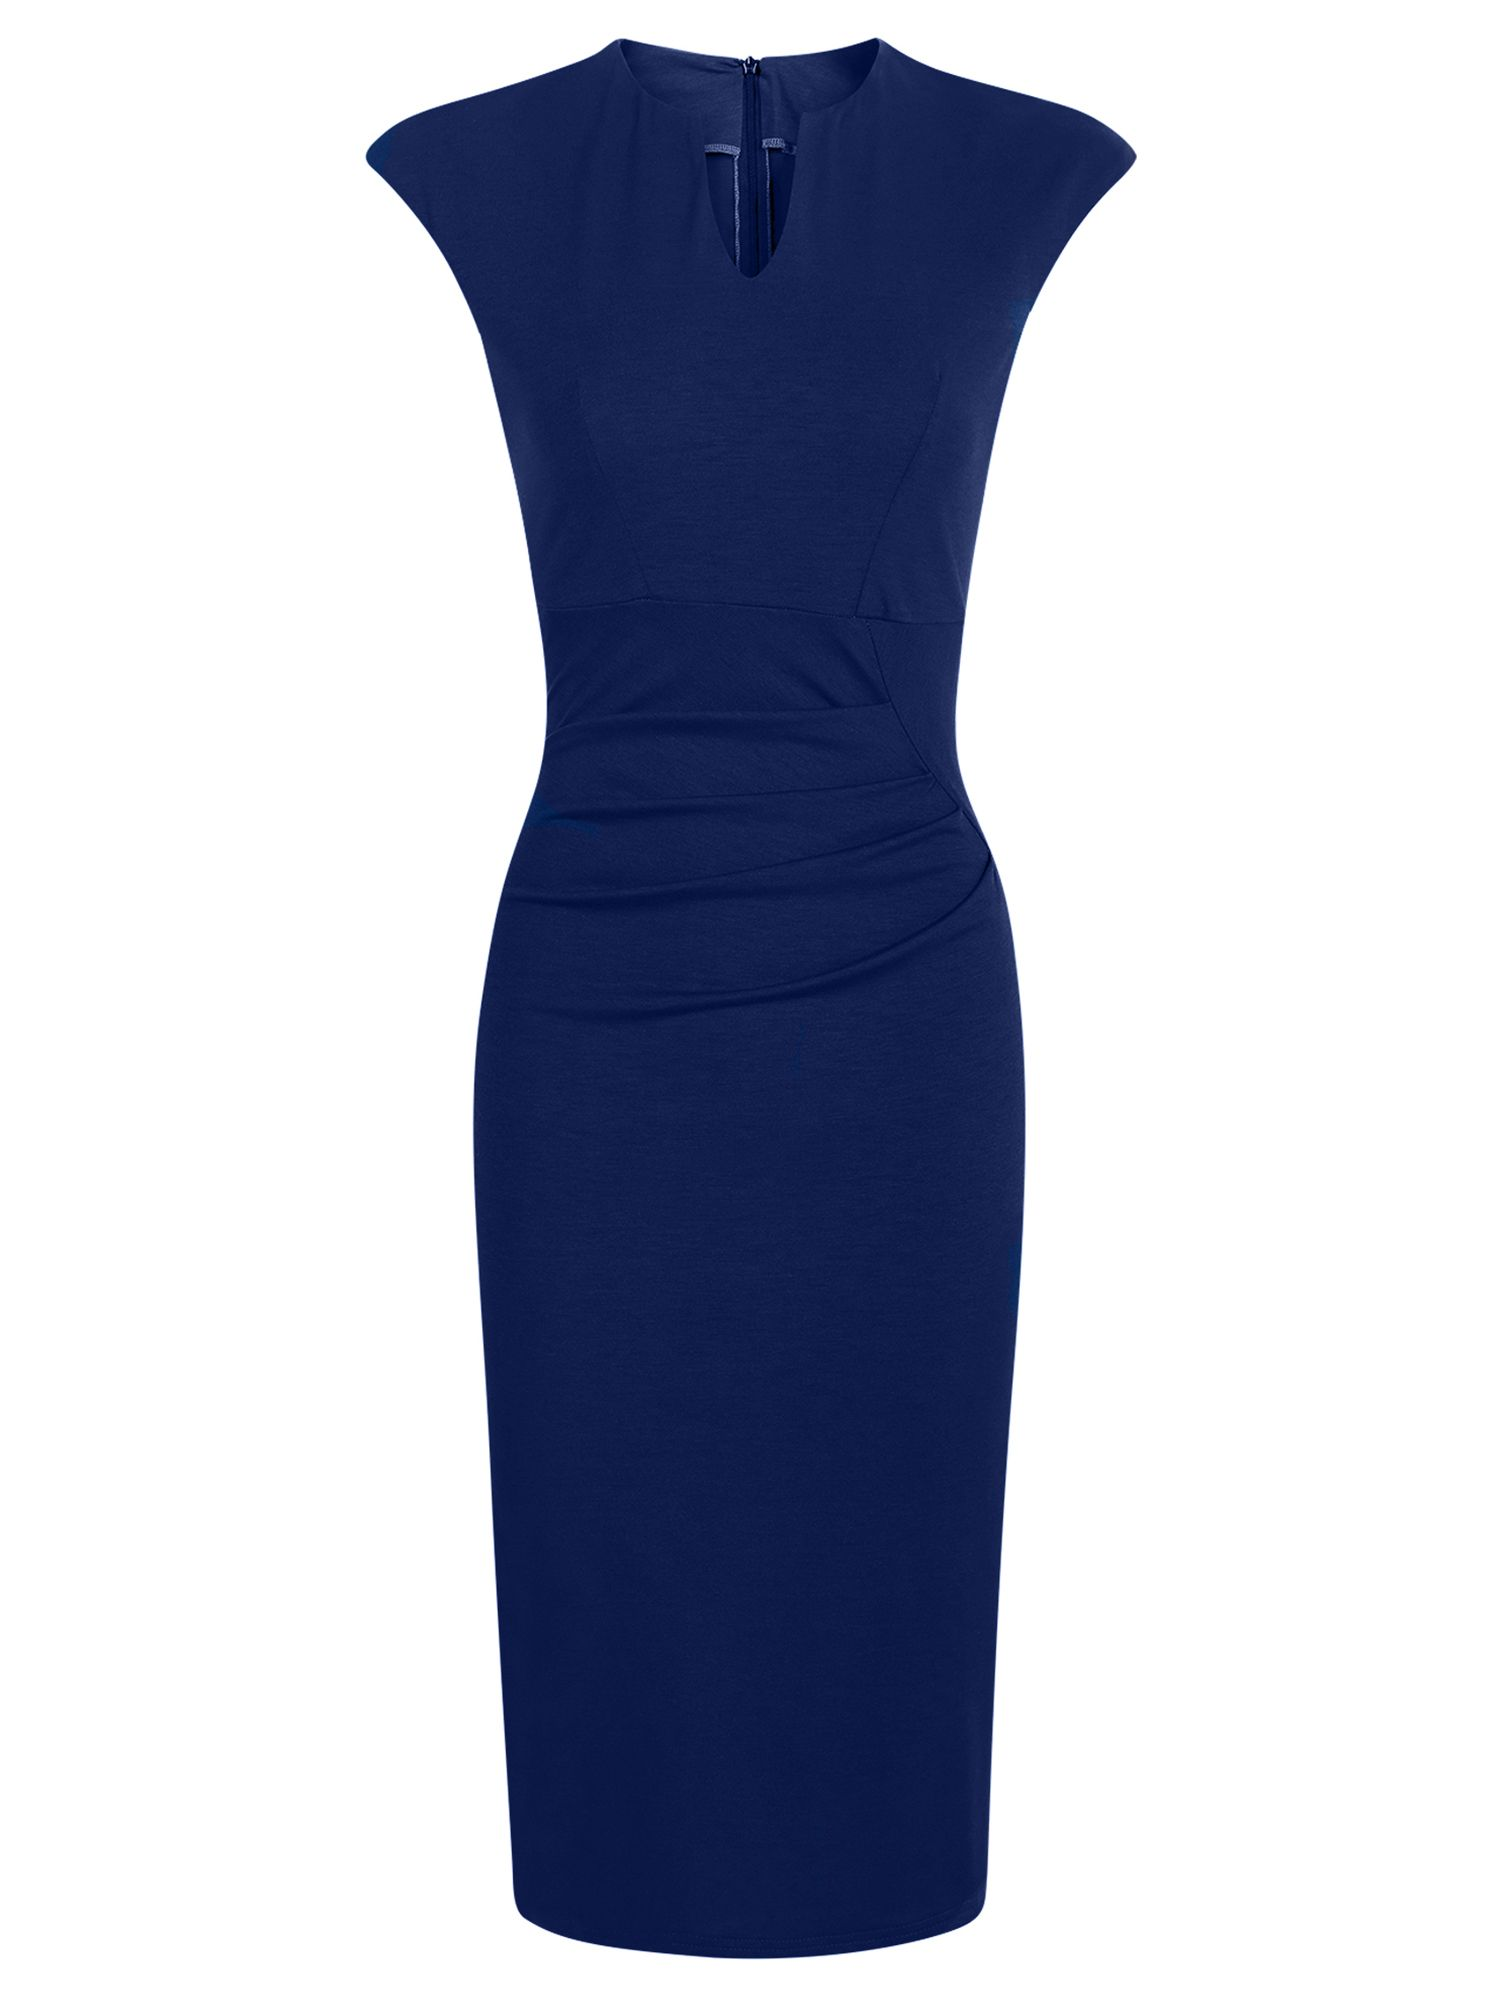 HotSquash Kensington V Cut Jersey Dress, Blue